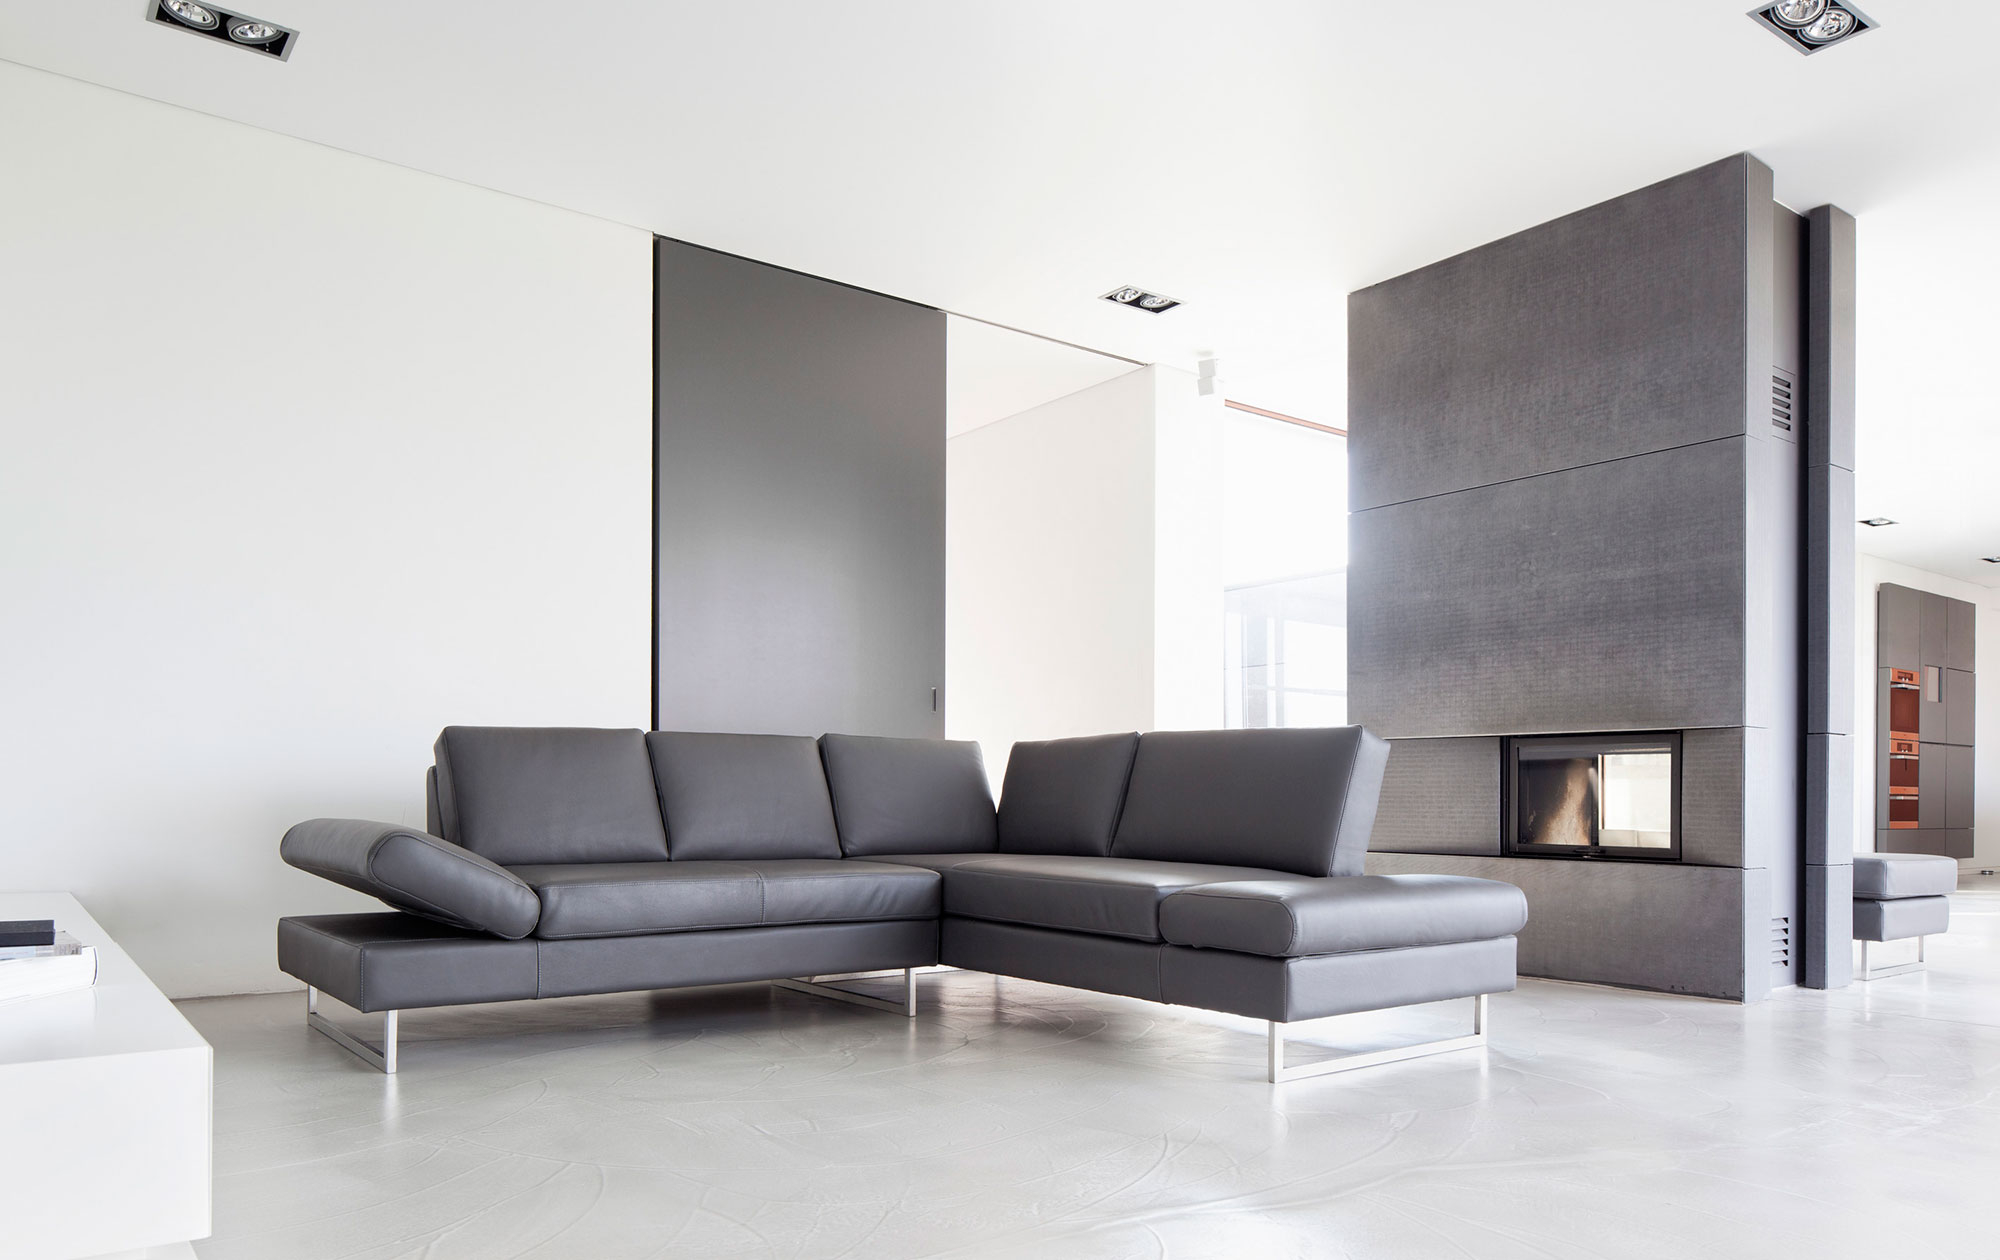 Schlafsofa Boxspring Sofa Essen In Leder | Sessel-manufaktur.de